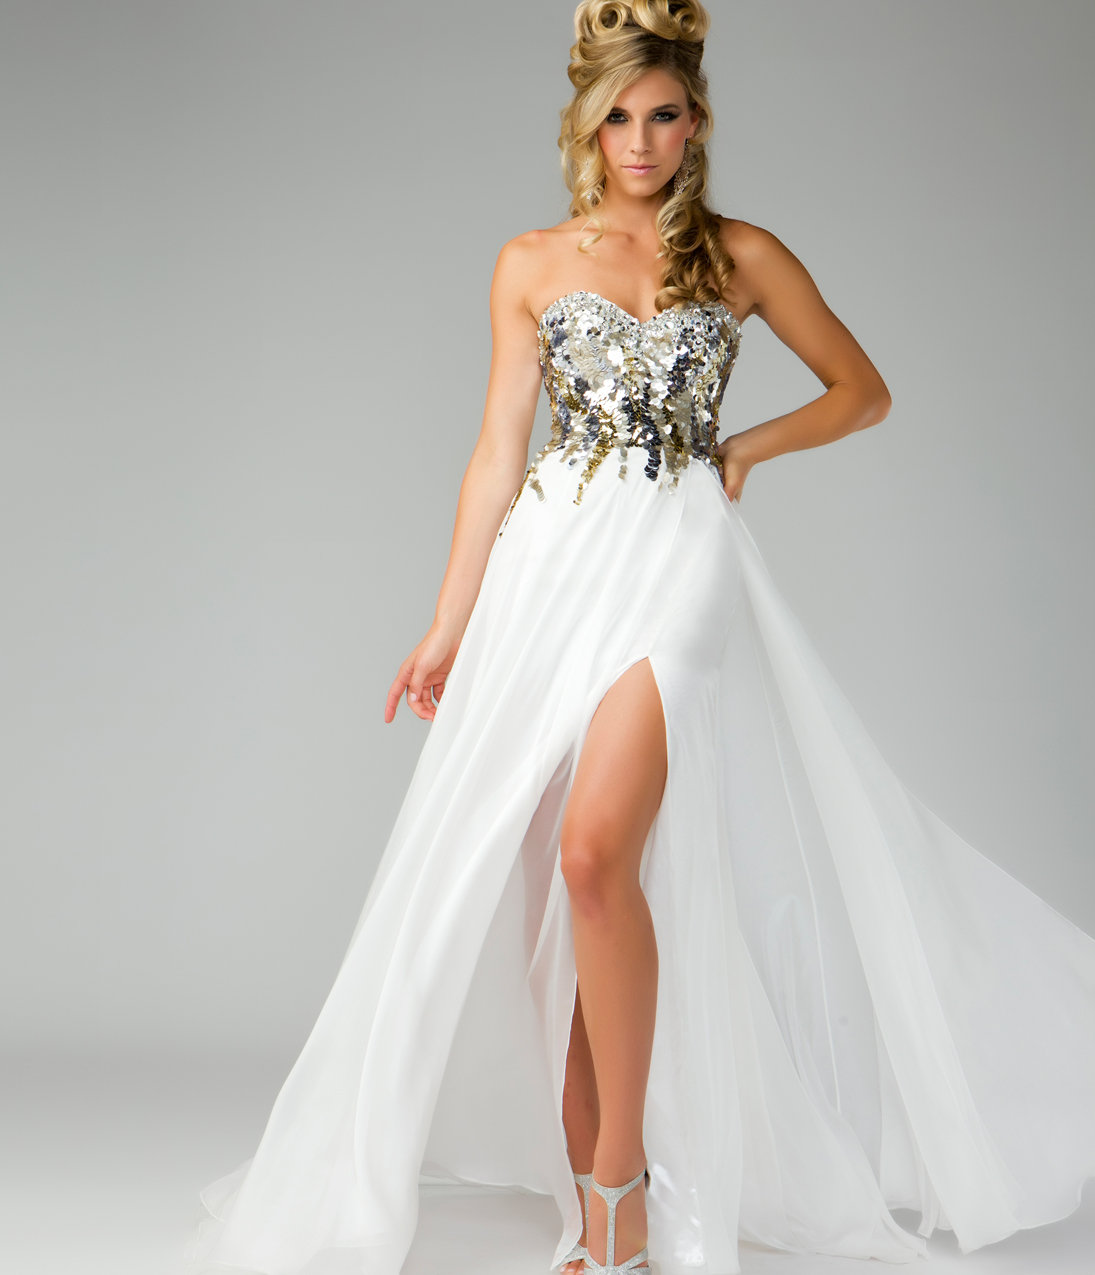 Unique Original Prom Dresses - Long Dresses Online